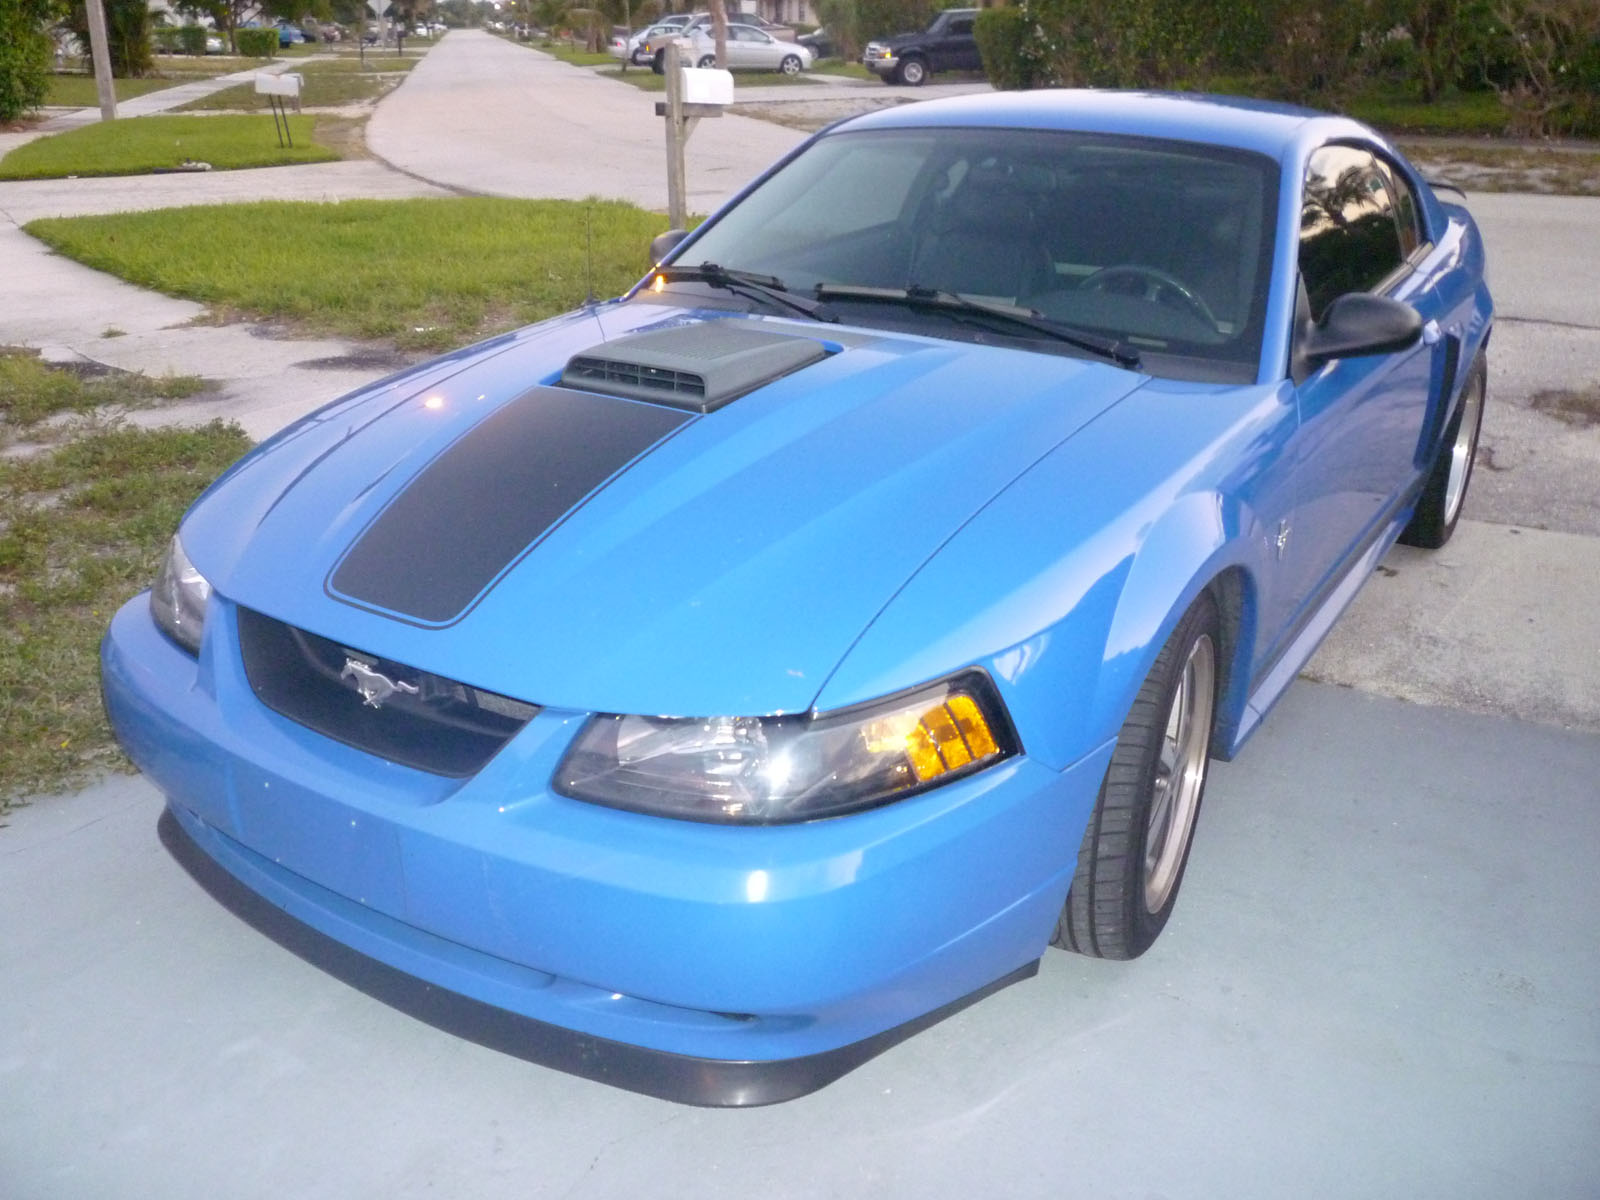 2003 ford mach1 mustang mach 1 for sale deerfield beach florida. Black Bedroom Furniture Sets. Home Design Ideas